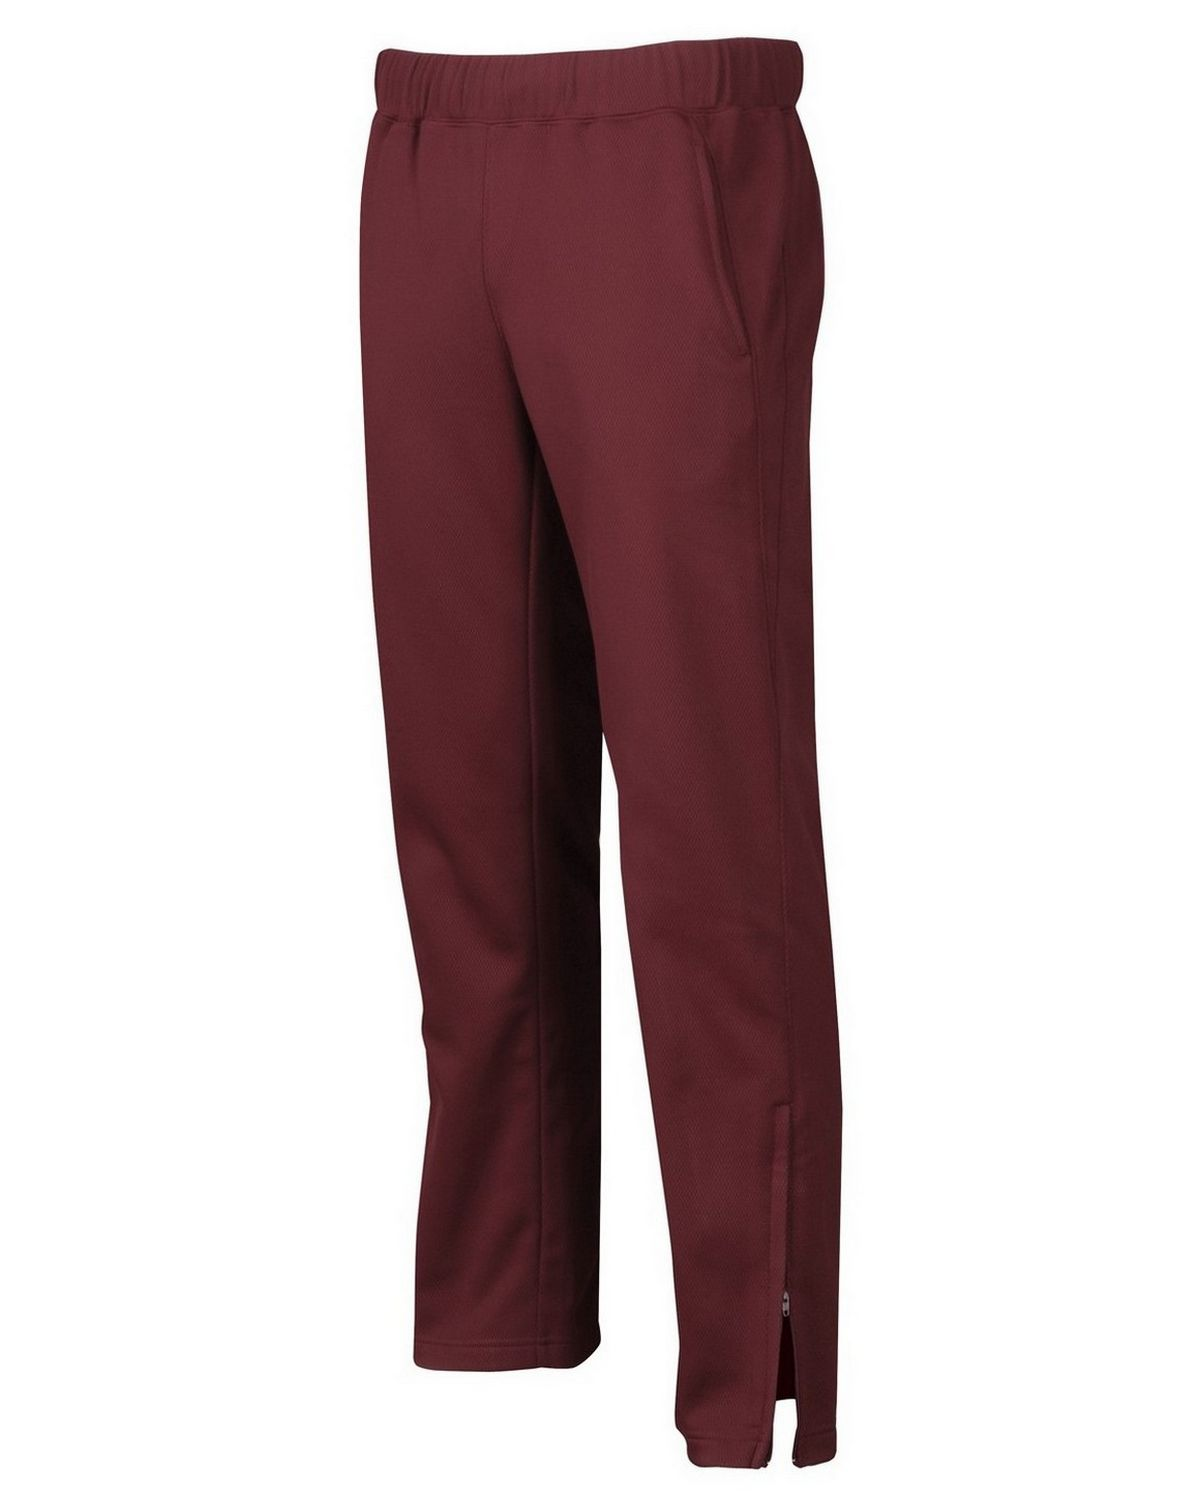 Tri-Mountain Performance 7345 Lady Tornado Pants - Dark Maroon - S 7345